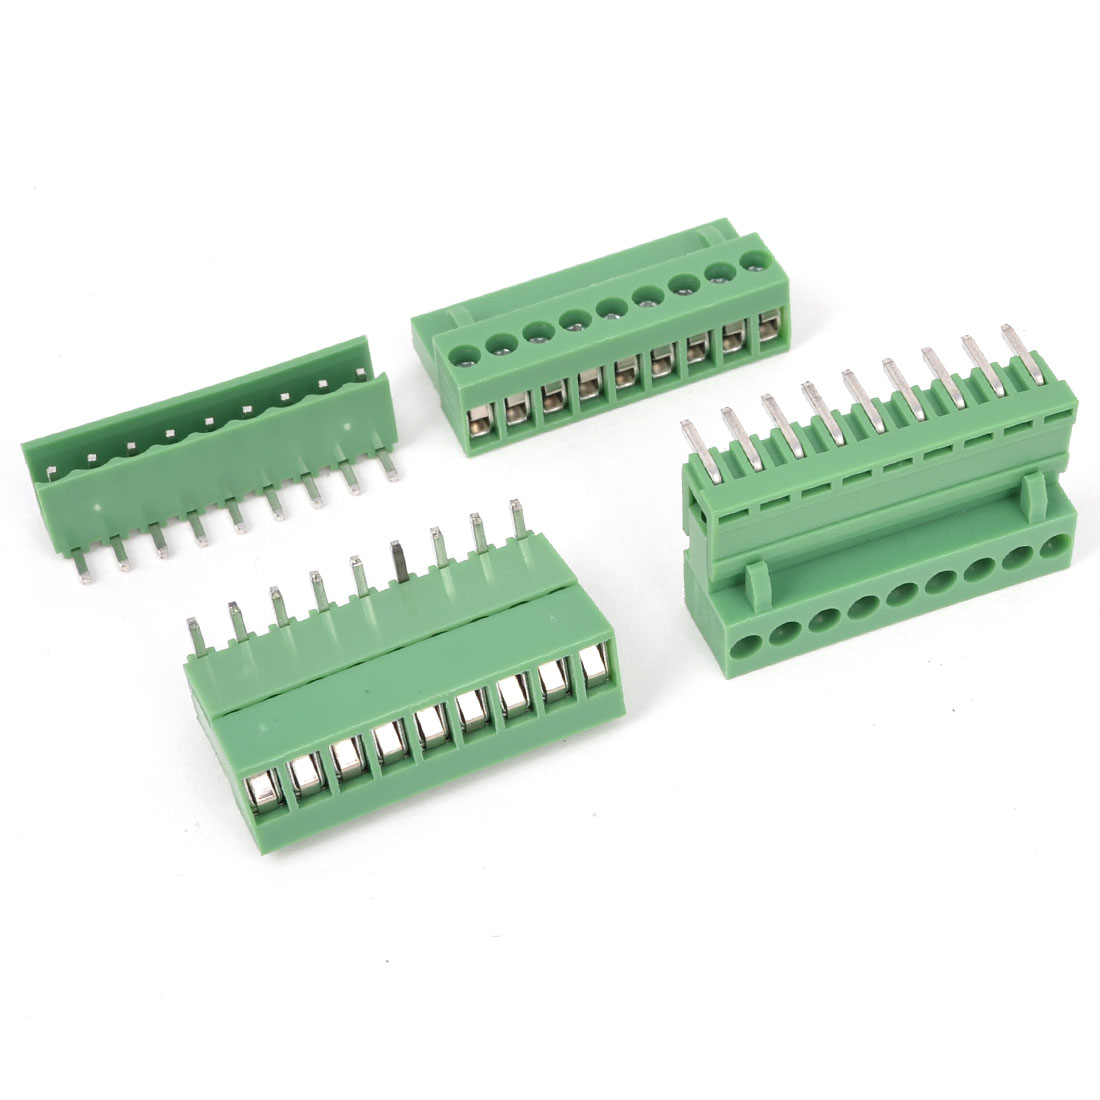 3Pcs Green AC 300V 10A 9P Pins PCB Screw Terminal Block Connector 3.96mm Pitch